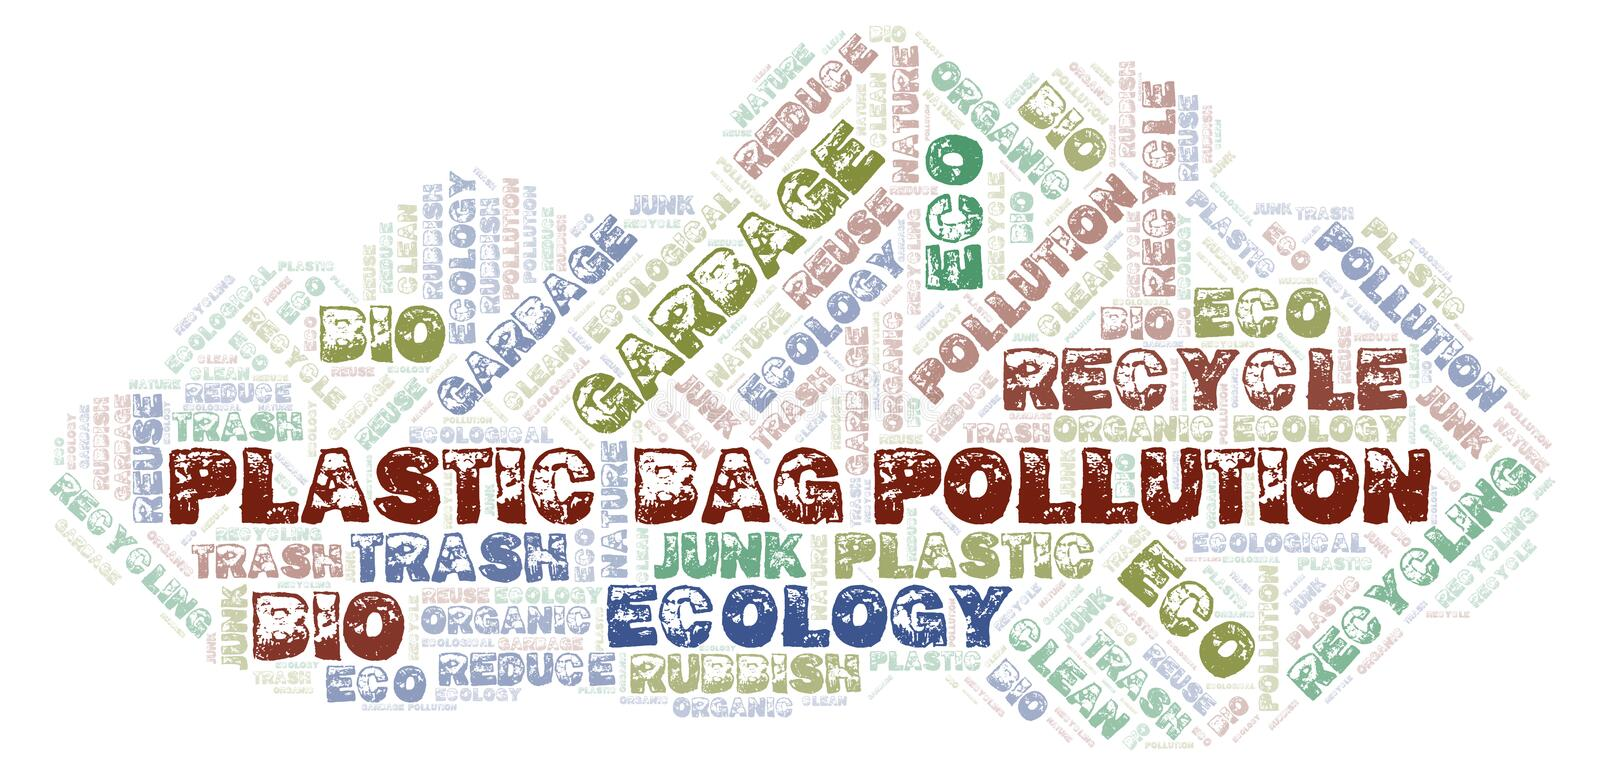 Plastic Bag Pollution word cloud stock images